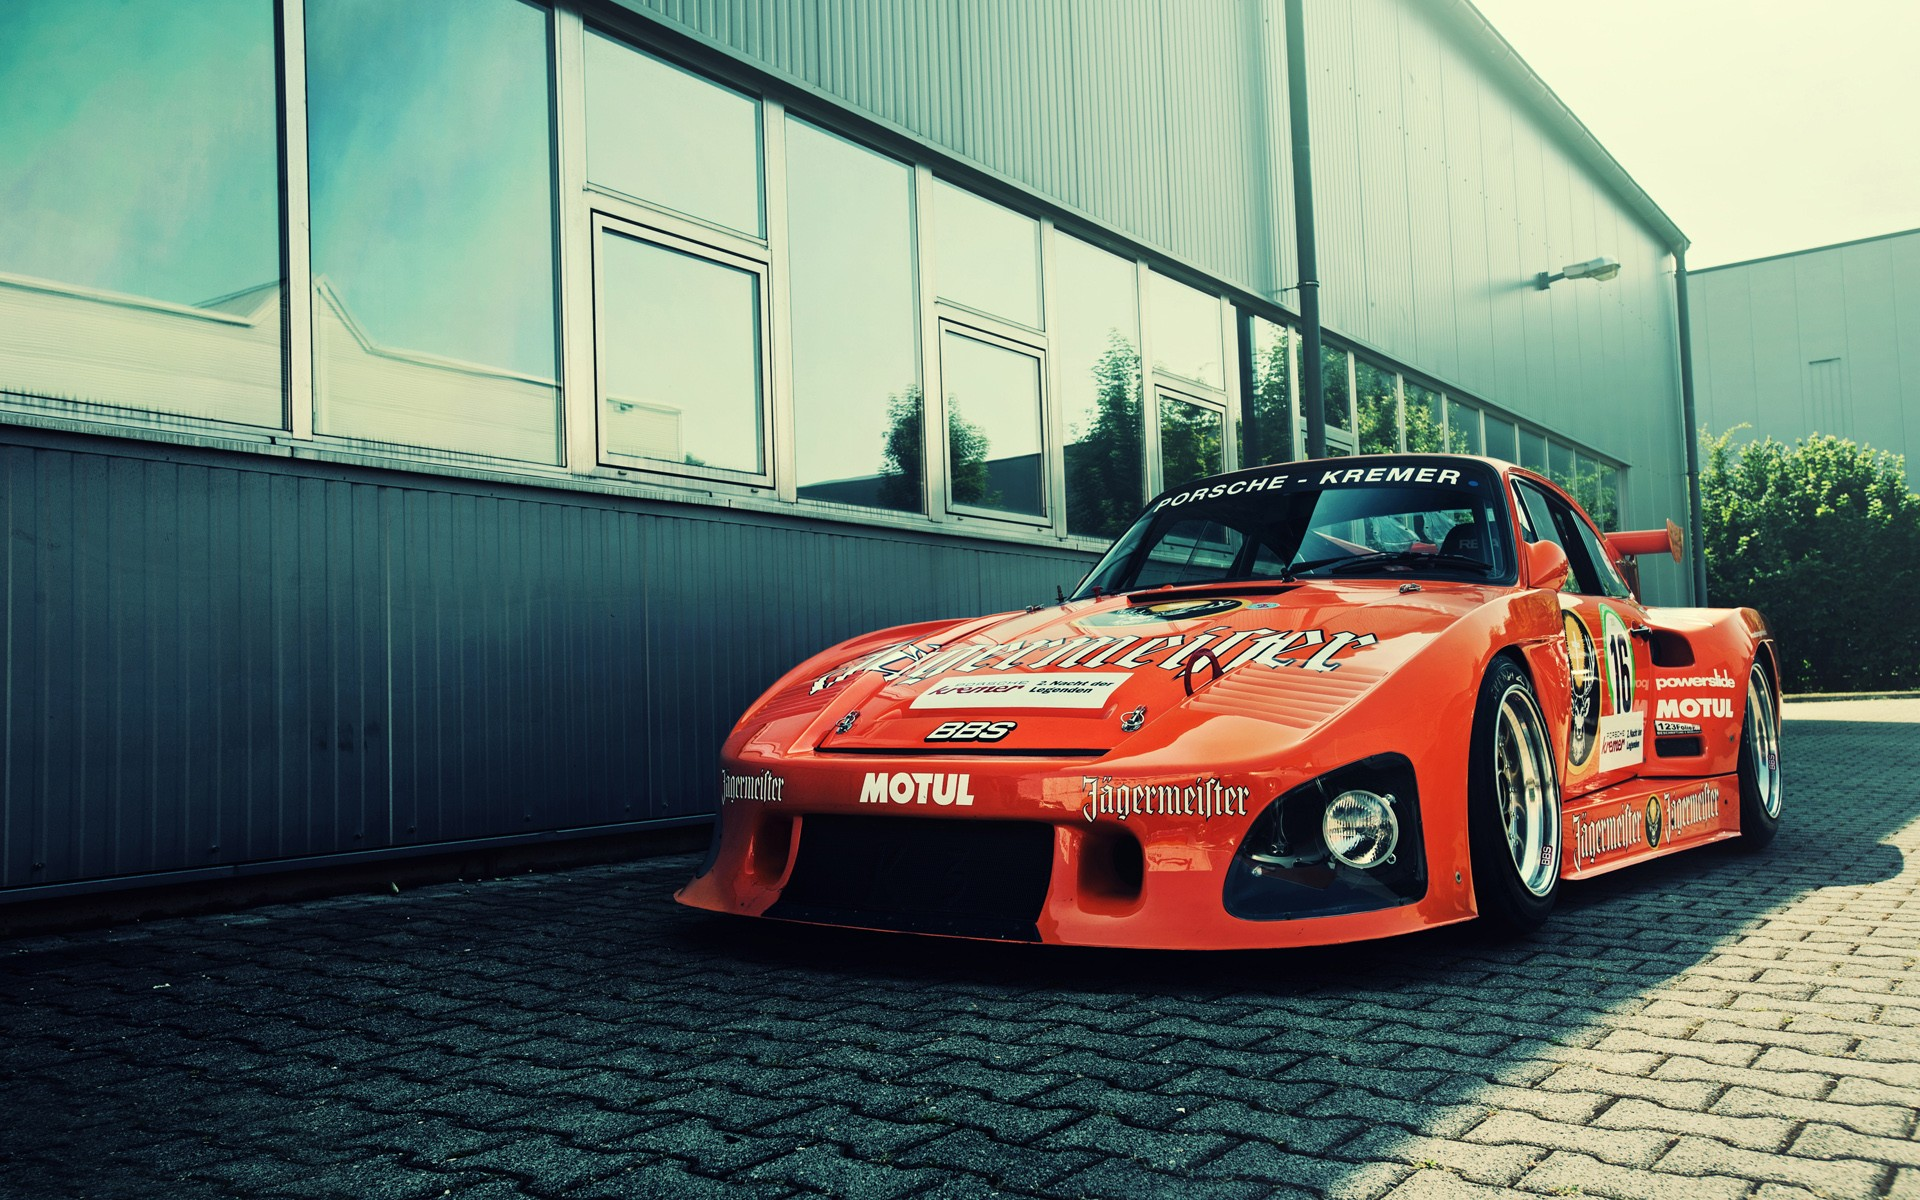 Kremer Porsche 935 K3 Jagermeister Wallpaper Hd Car Wallpapers Id 3044